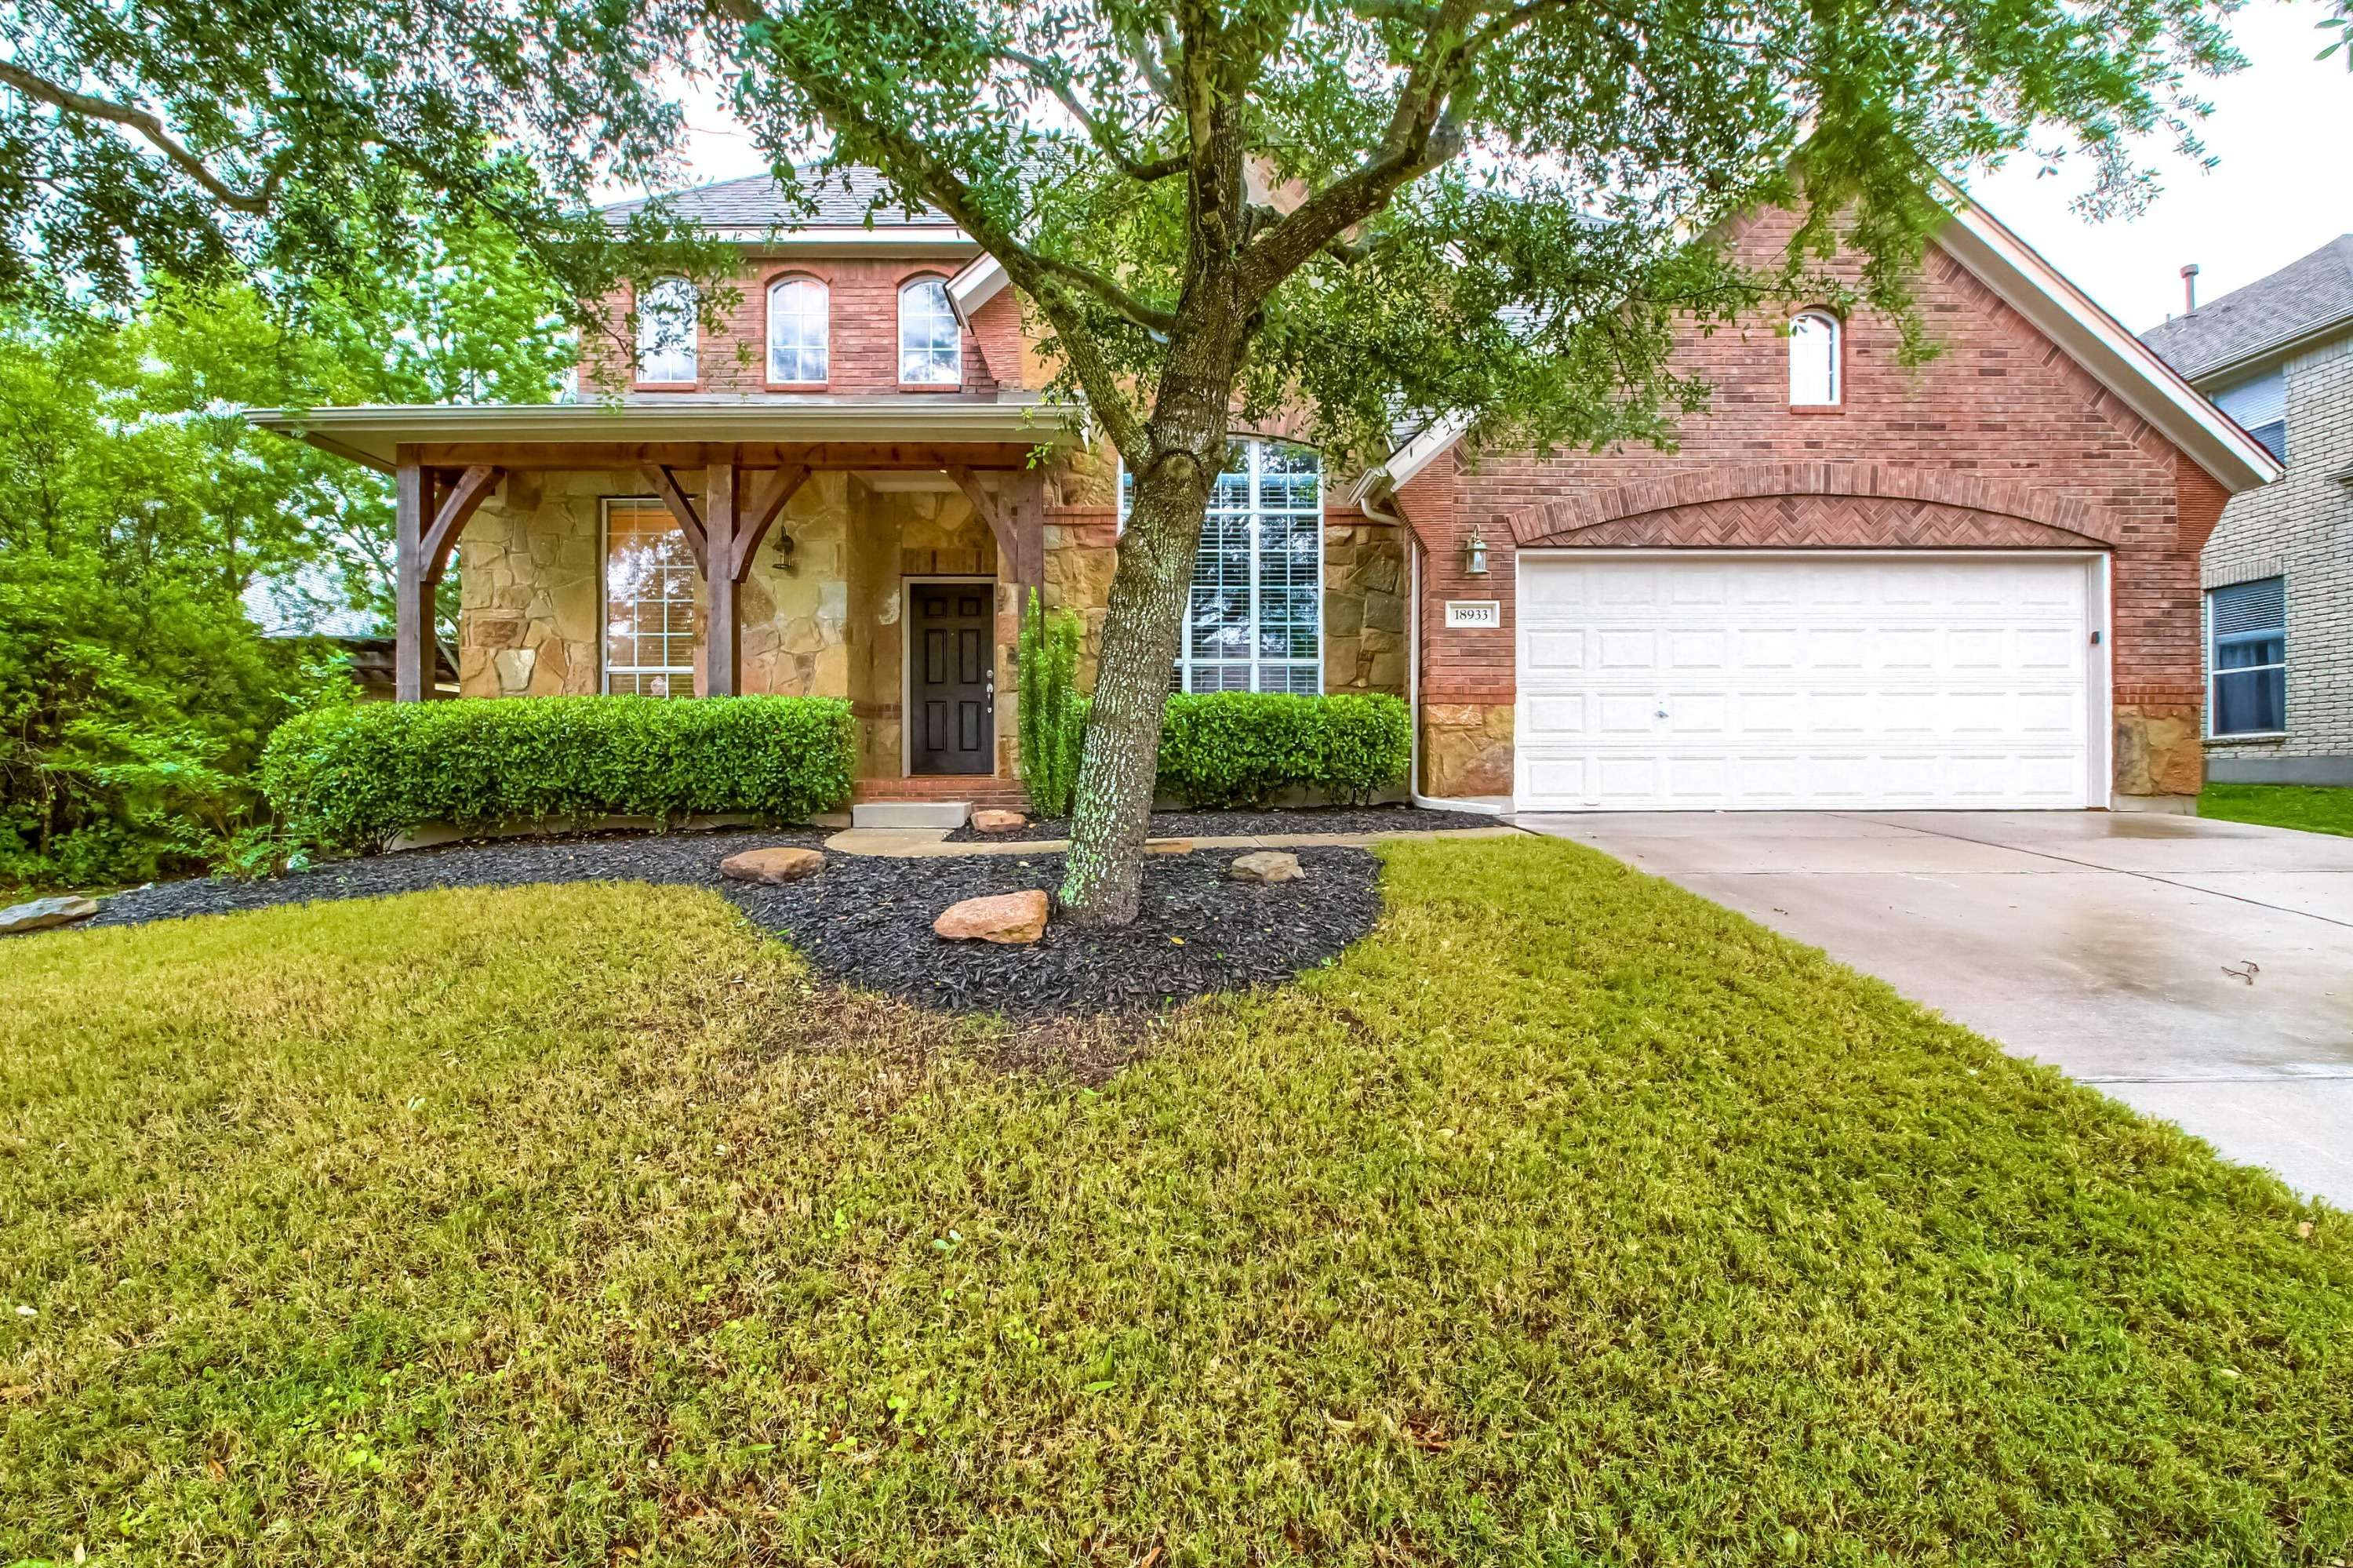 Falcon Pointe home for sale Pflugerville TX